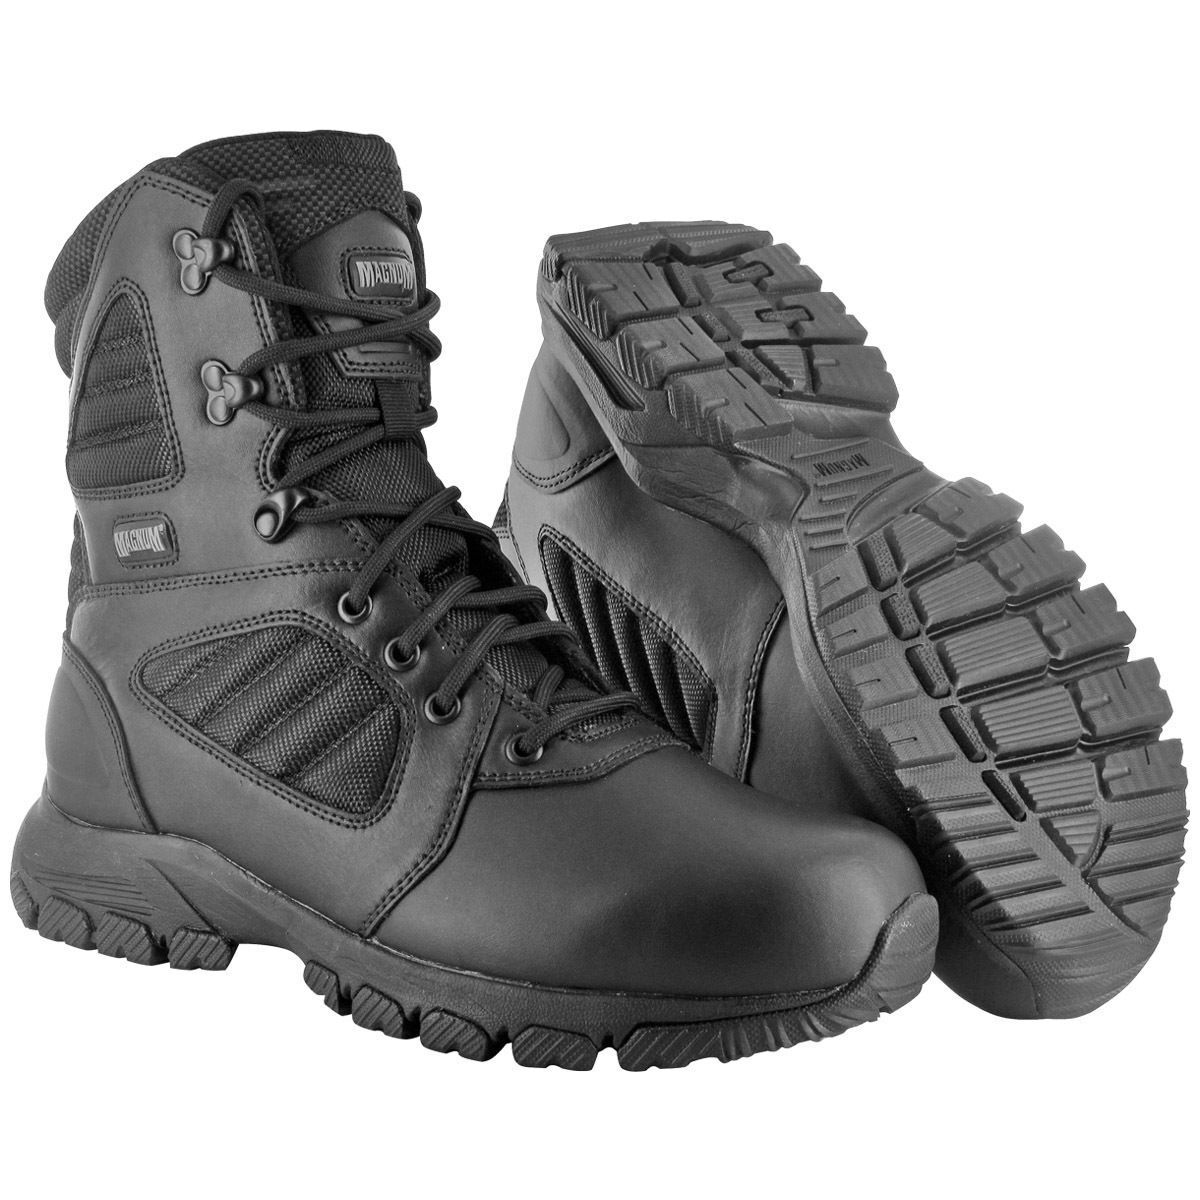 Magnum Patrol Lynx 8.0 Army Tactical Patrol Magnum botas Police Security Forces Negro 8502c5